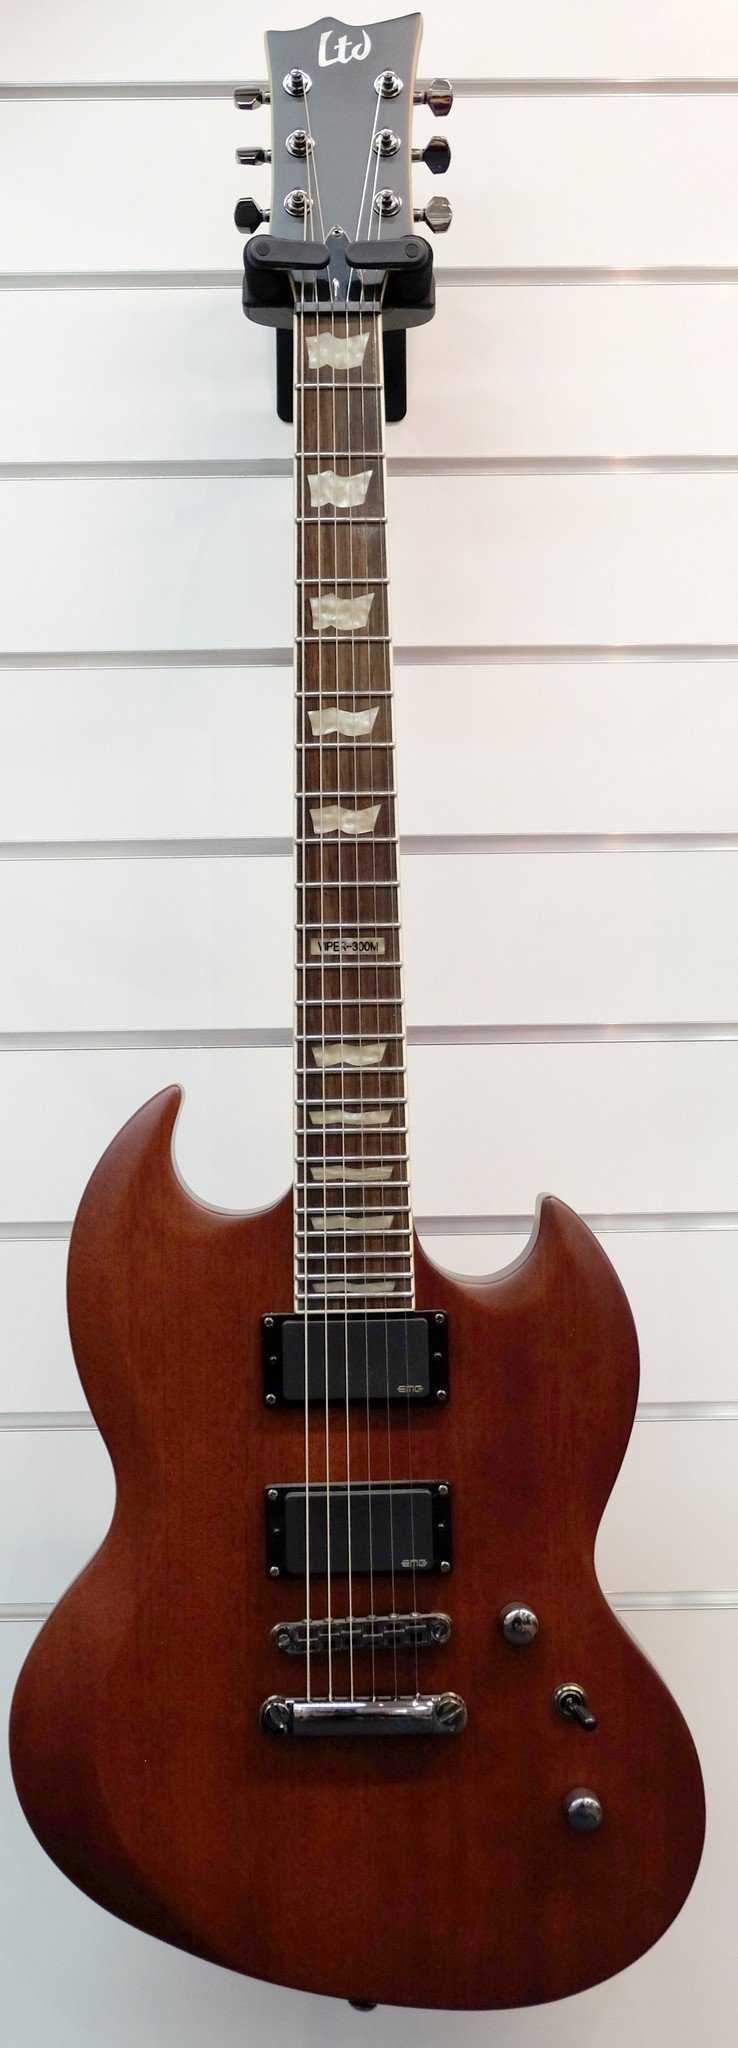 ESP LTD E-Gitarre Viper 300 M Vintage Brown Satin